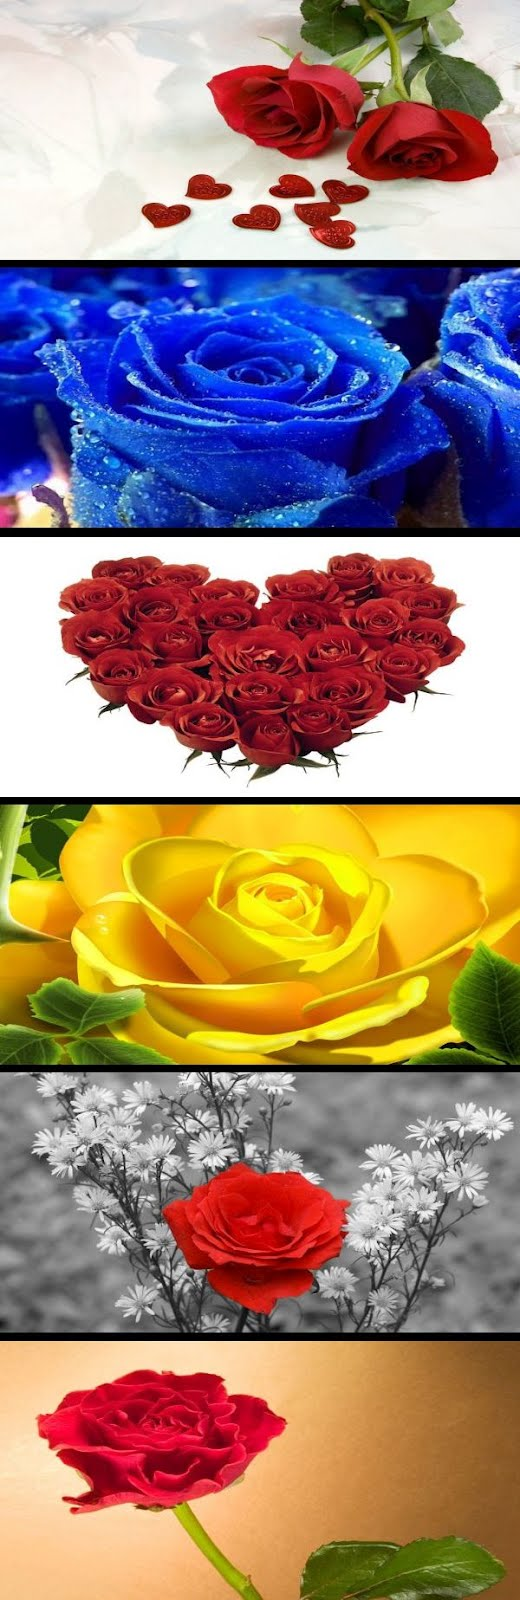 50 Free Roses Flowers Backgrounds Wallpapers Download